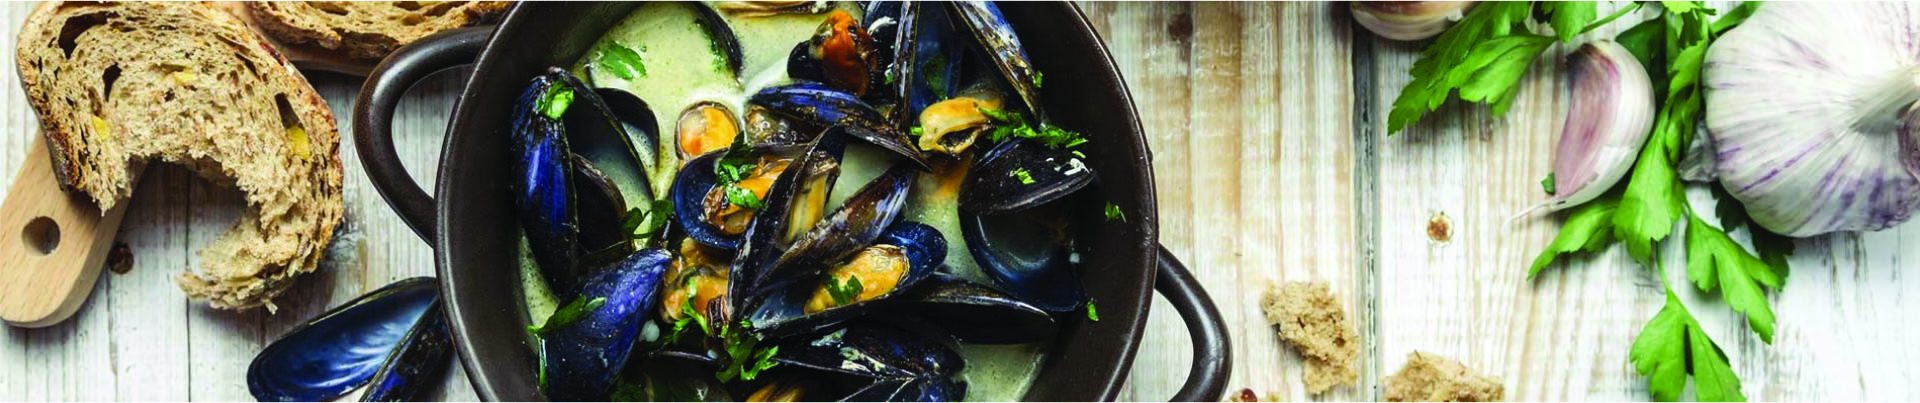 Bowl of Mussels Header